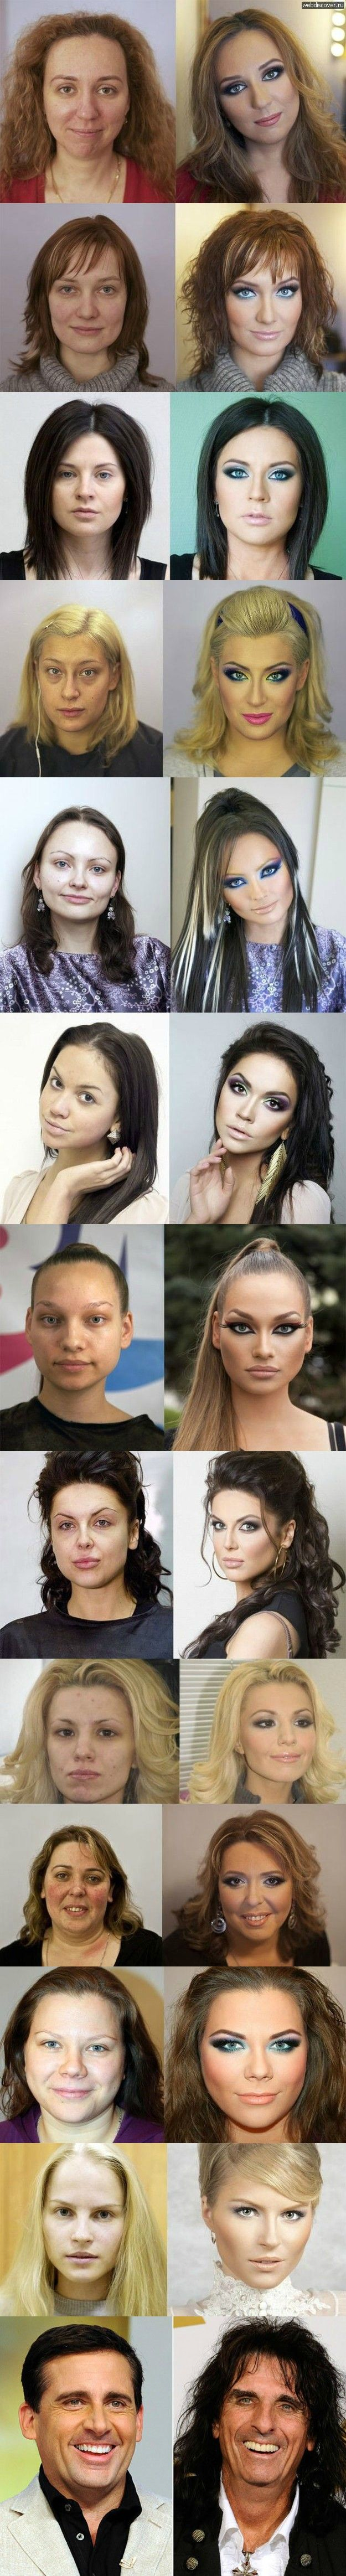 The difference that hair and makeup make. Don't be fooled by models and celebs--they look like normal people underneath it all!